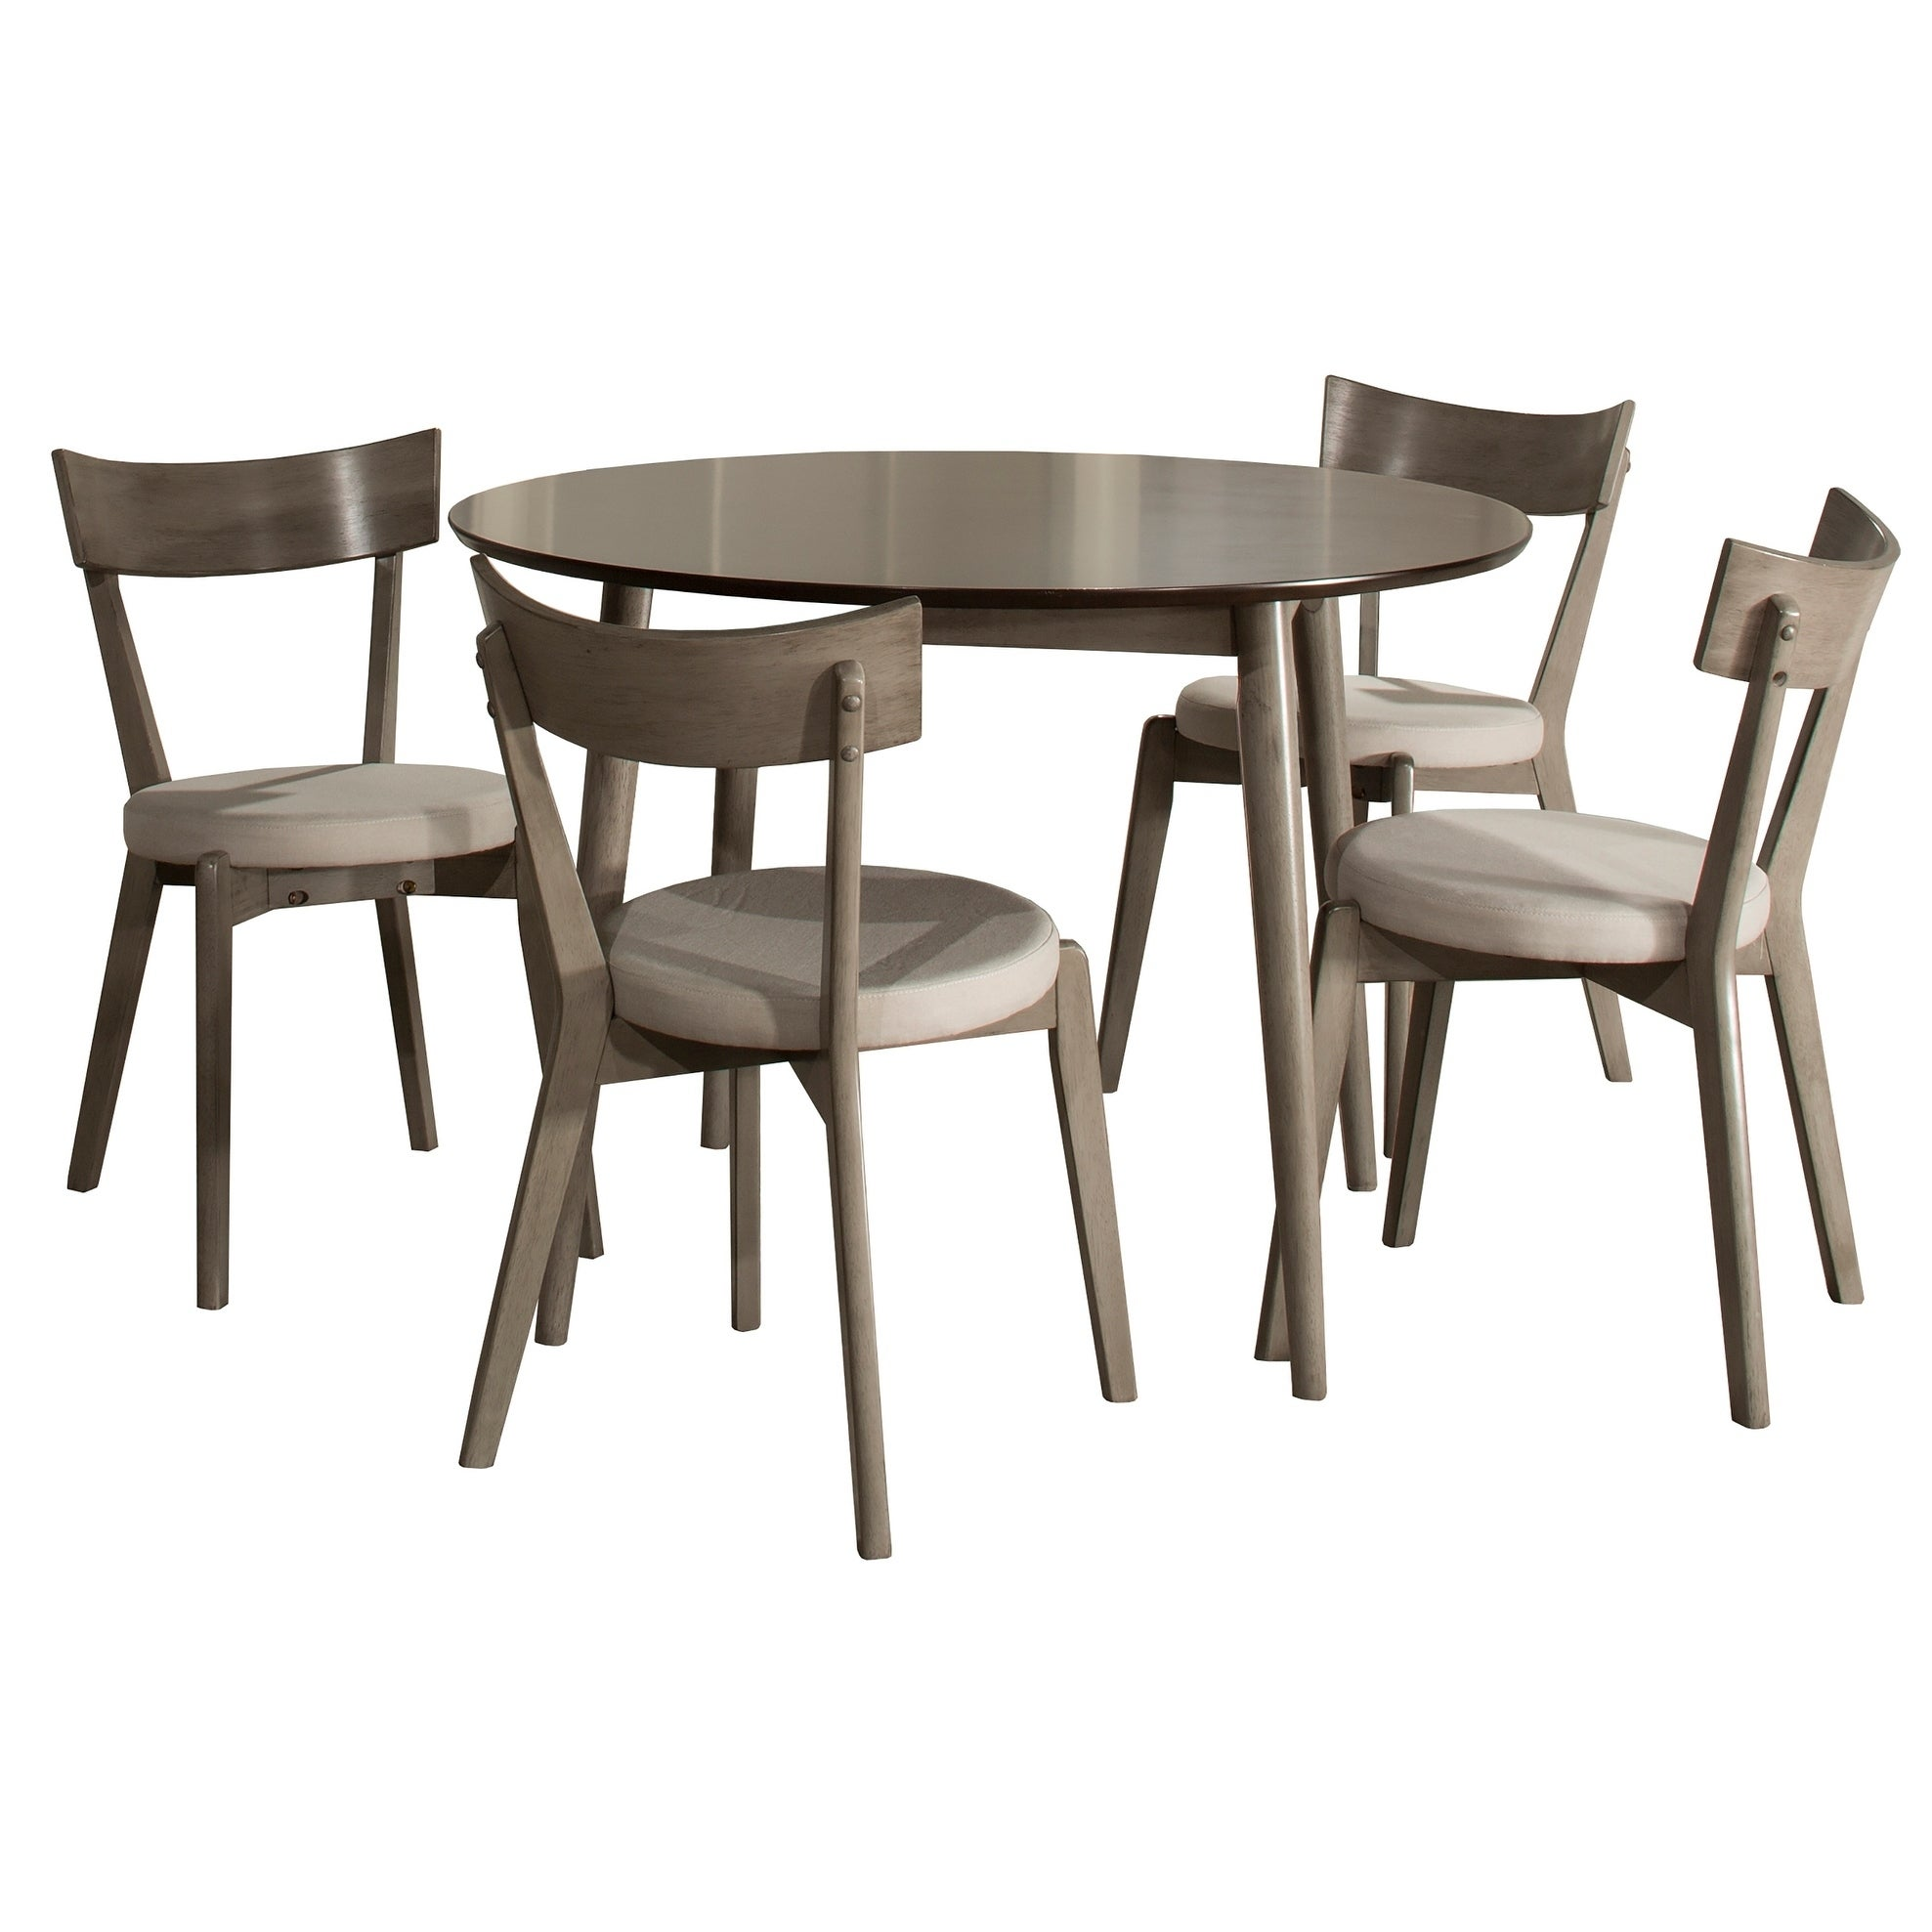 Hillsdale Furniture Mayson Five Piece Dining Set, Gray   Free Shipping  Today   Overstock   24024375